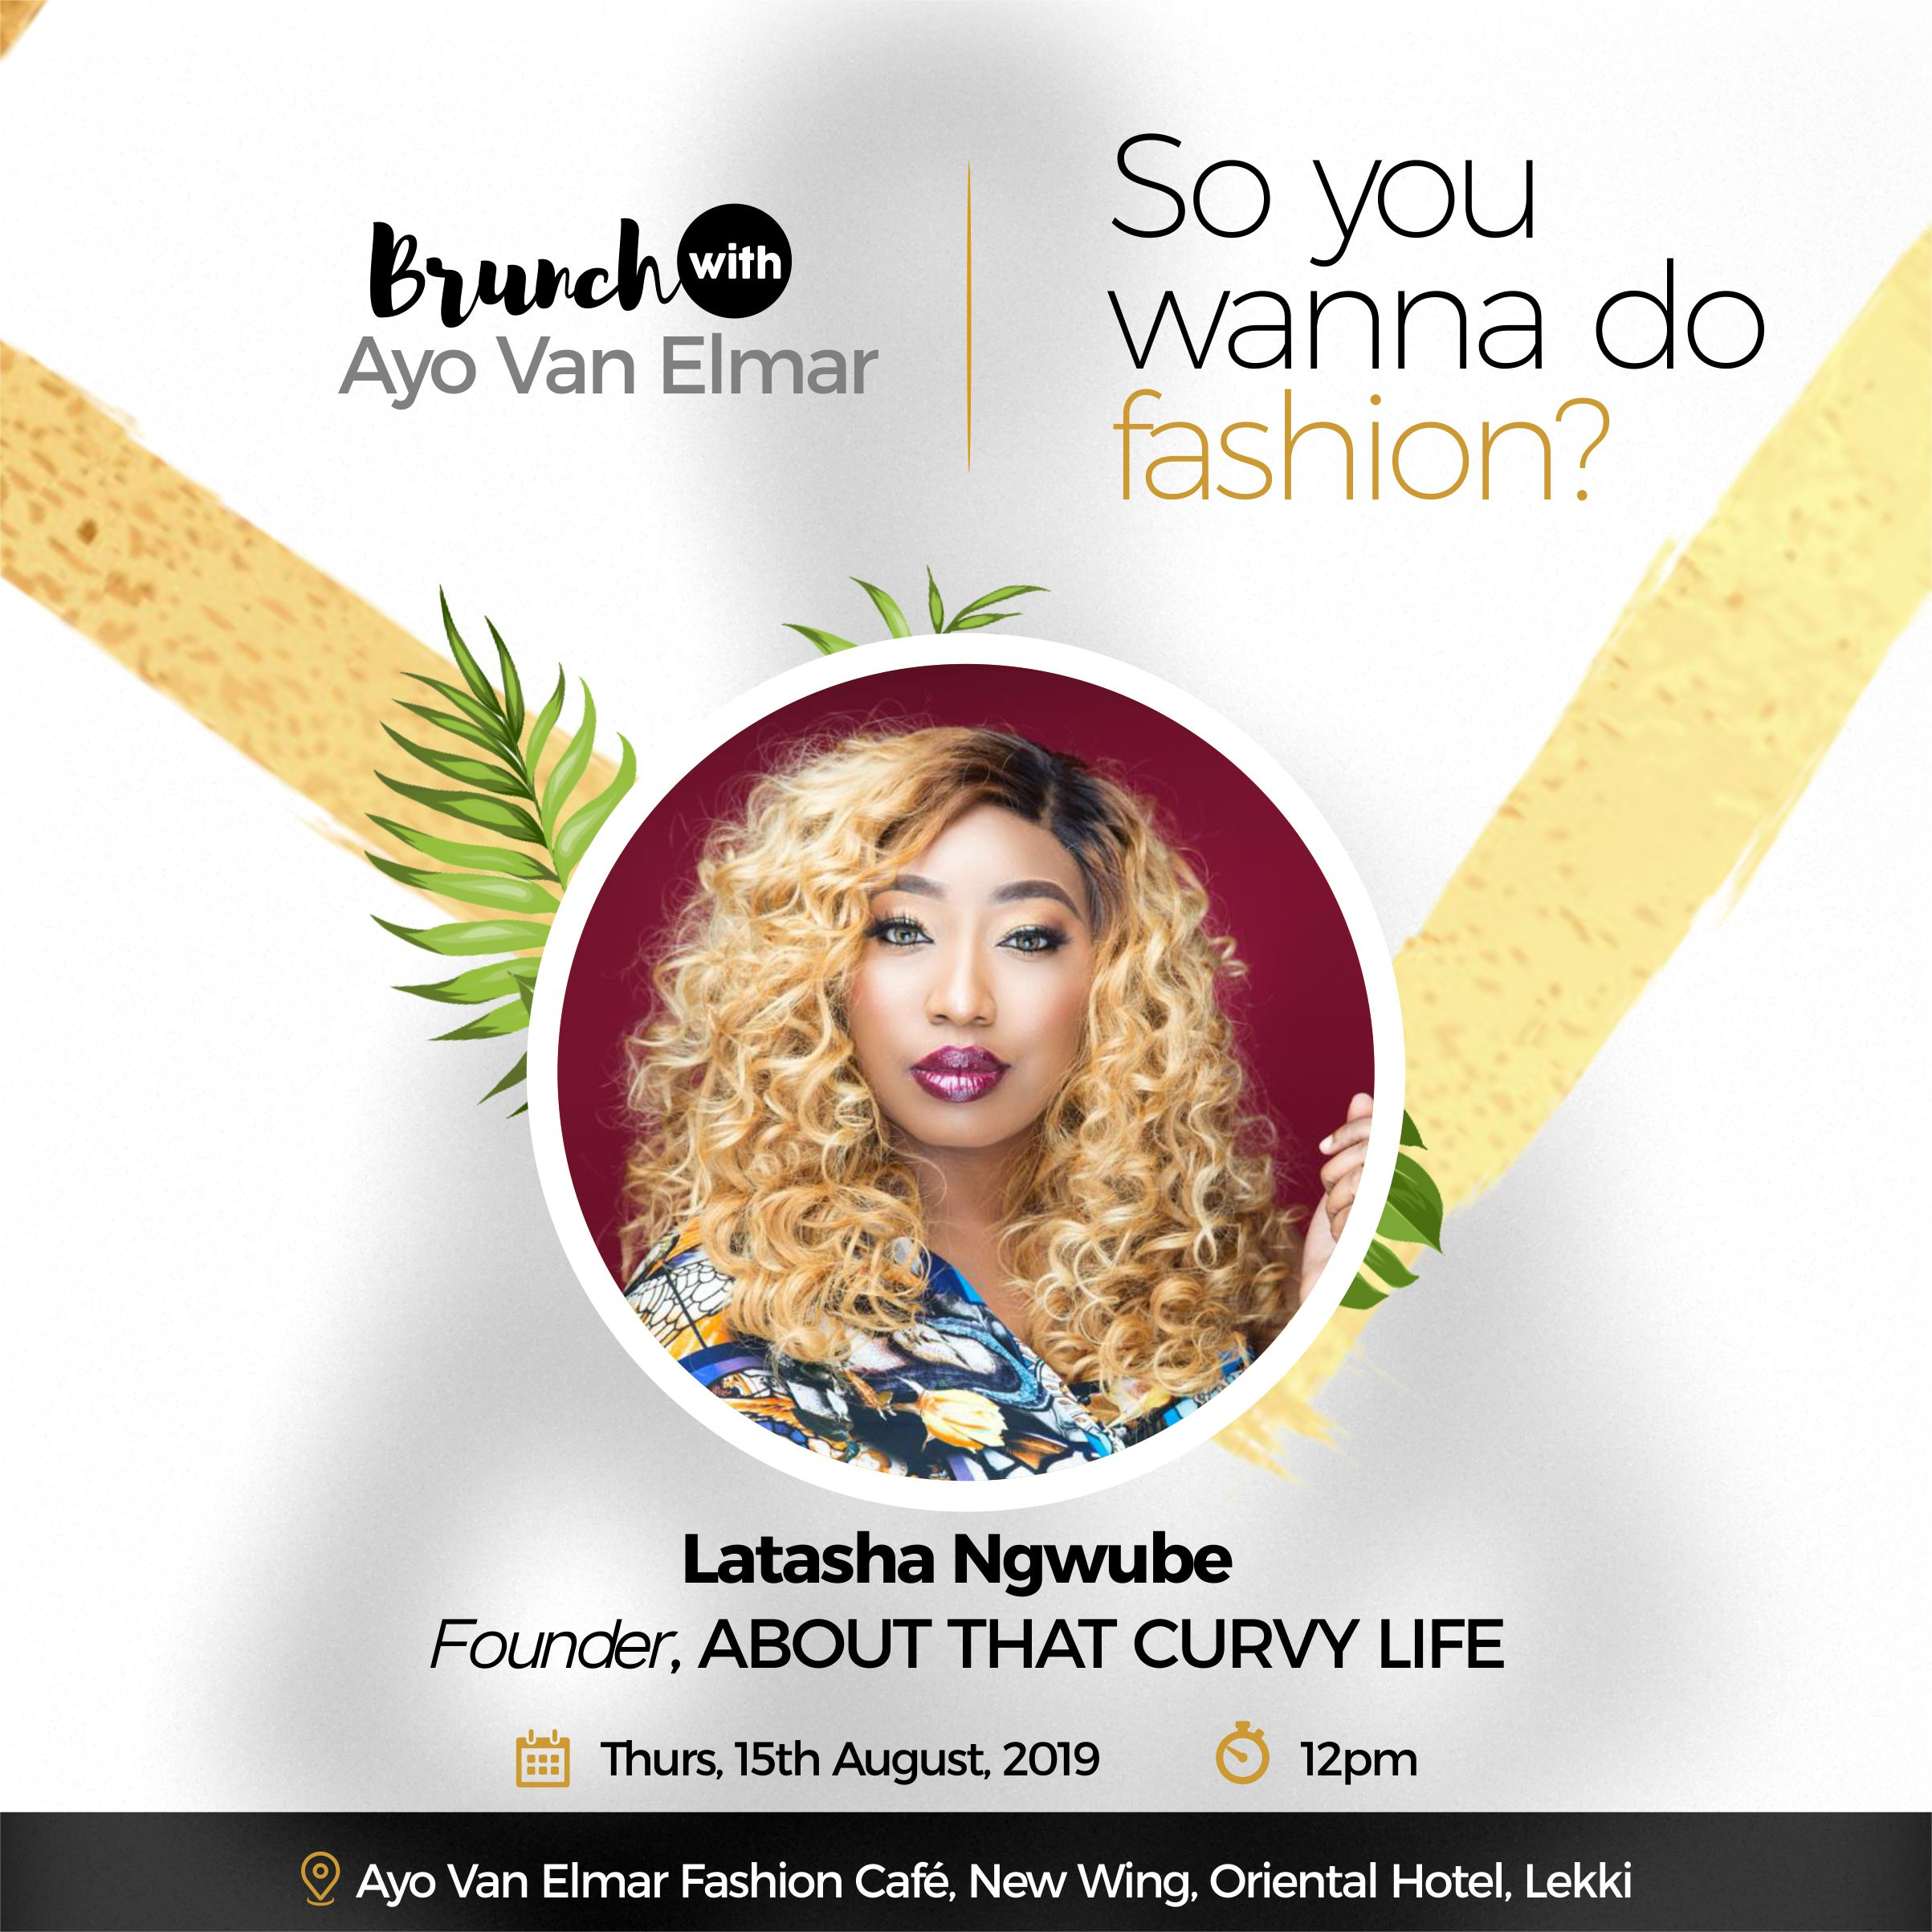 Latasha-ngwube-about-that-curvy-life-AVE-fashion-party